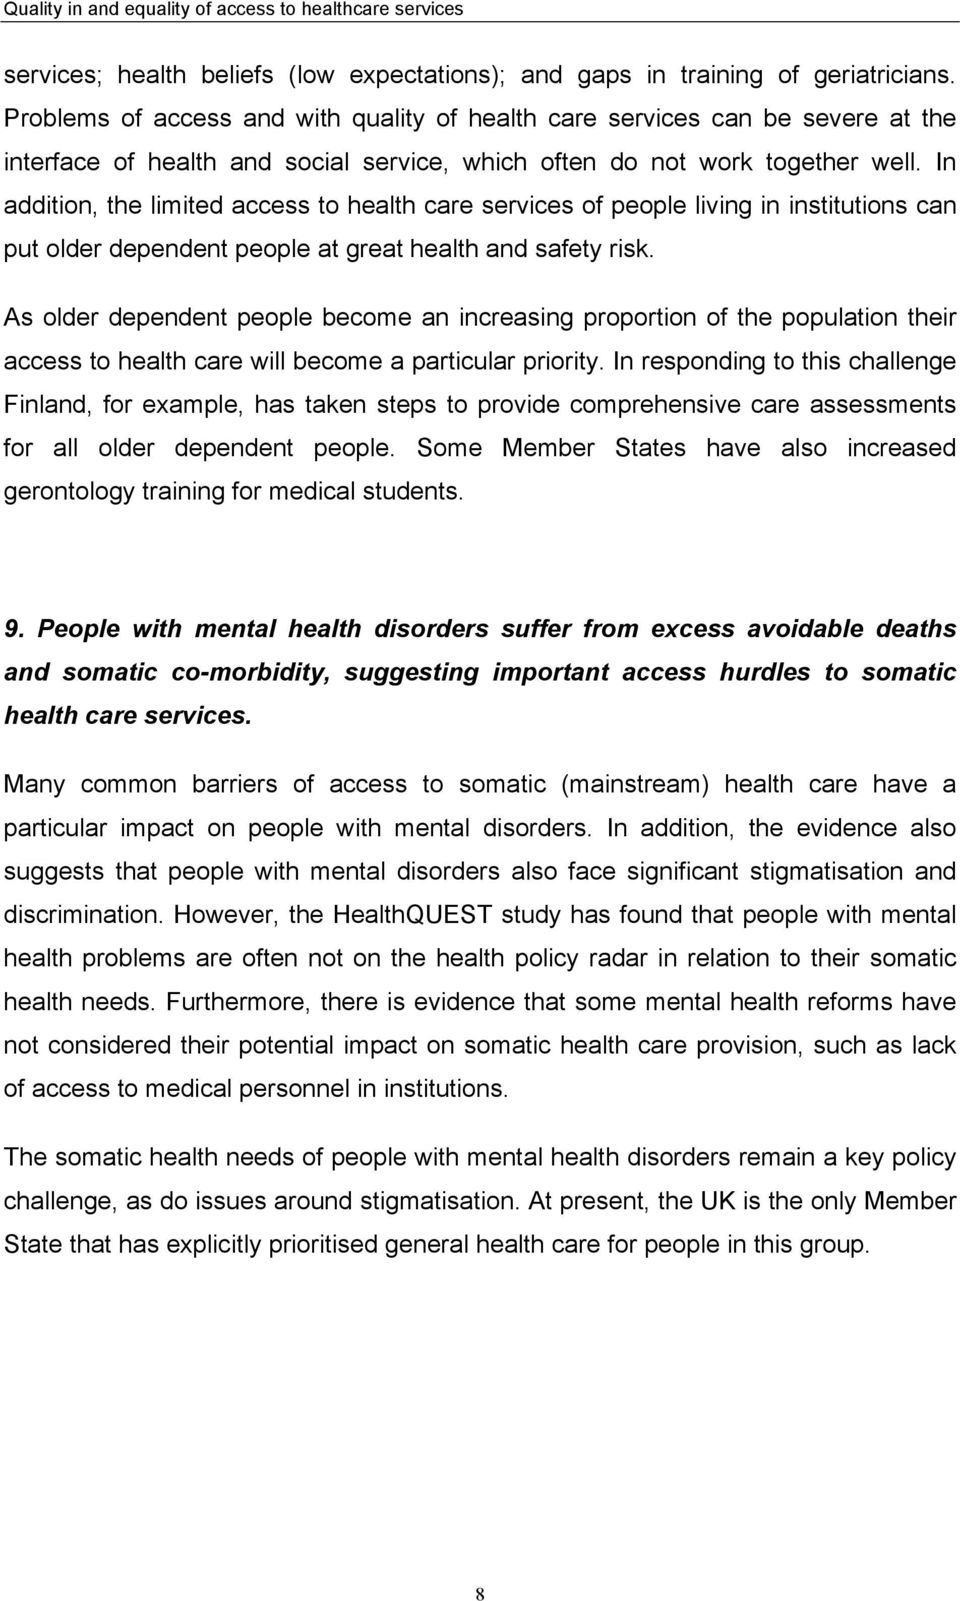 why is equality important in health and social care